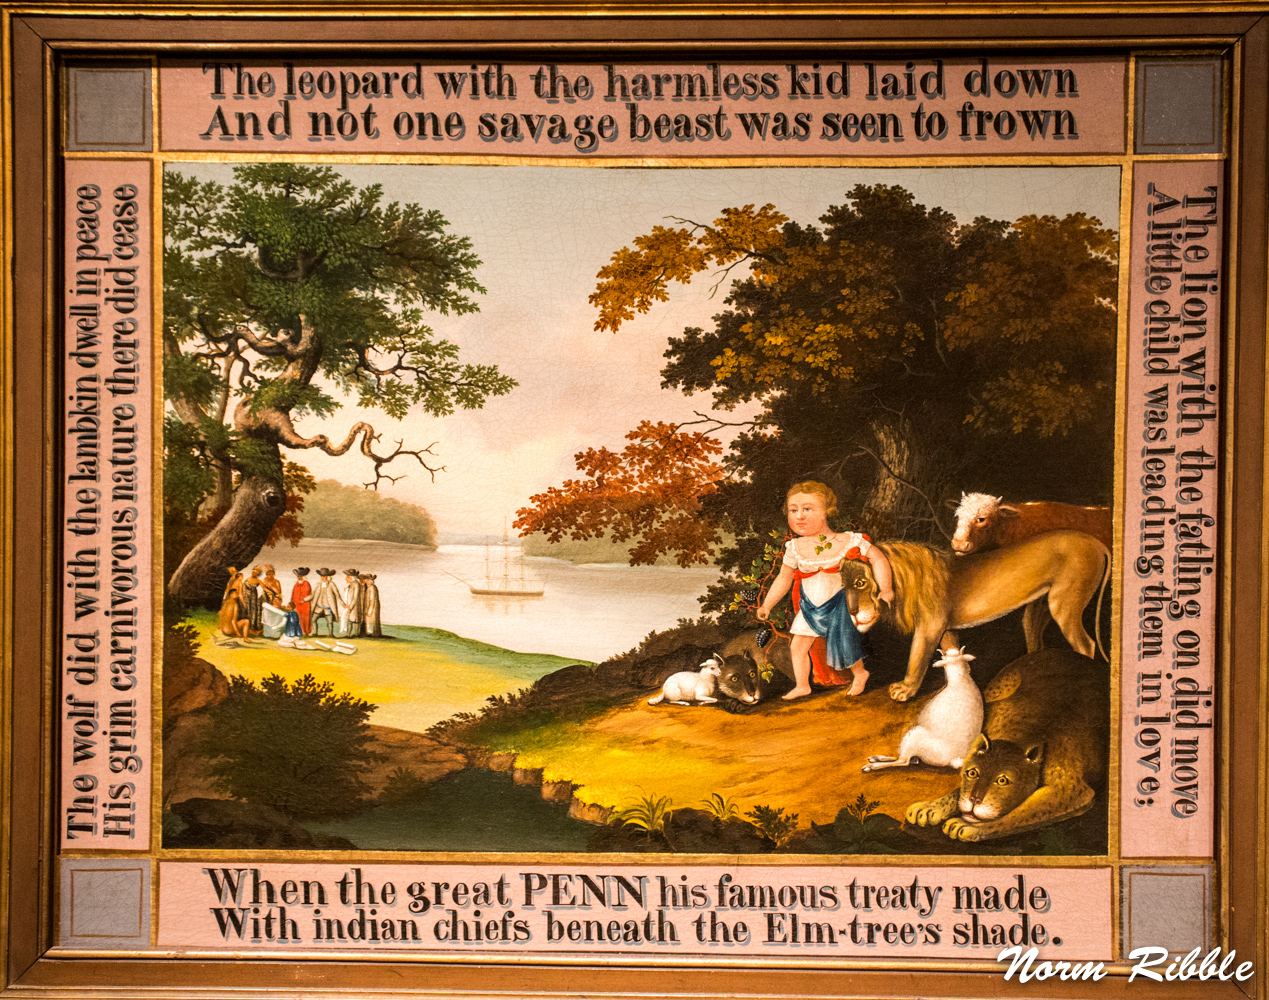 Penn Purchase of Land